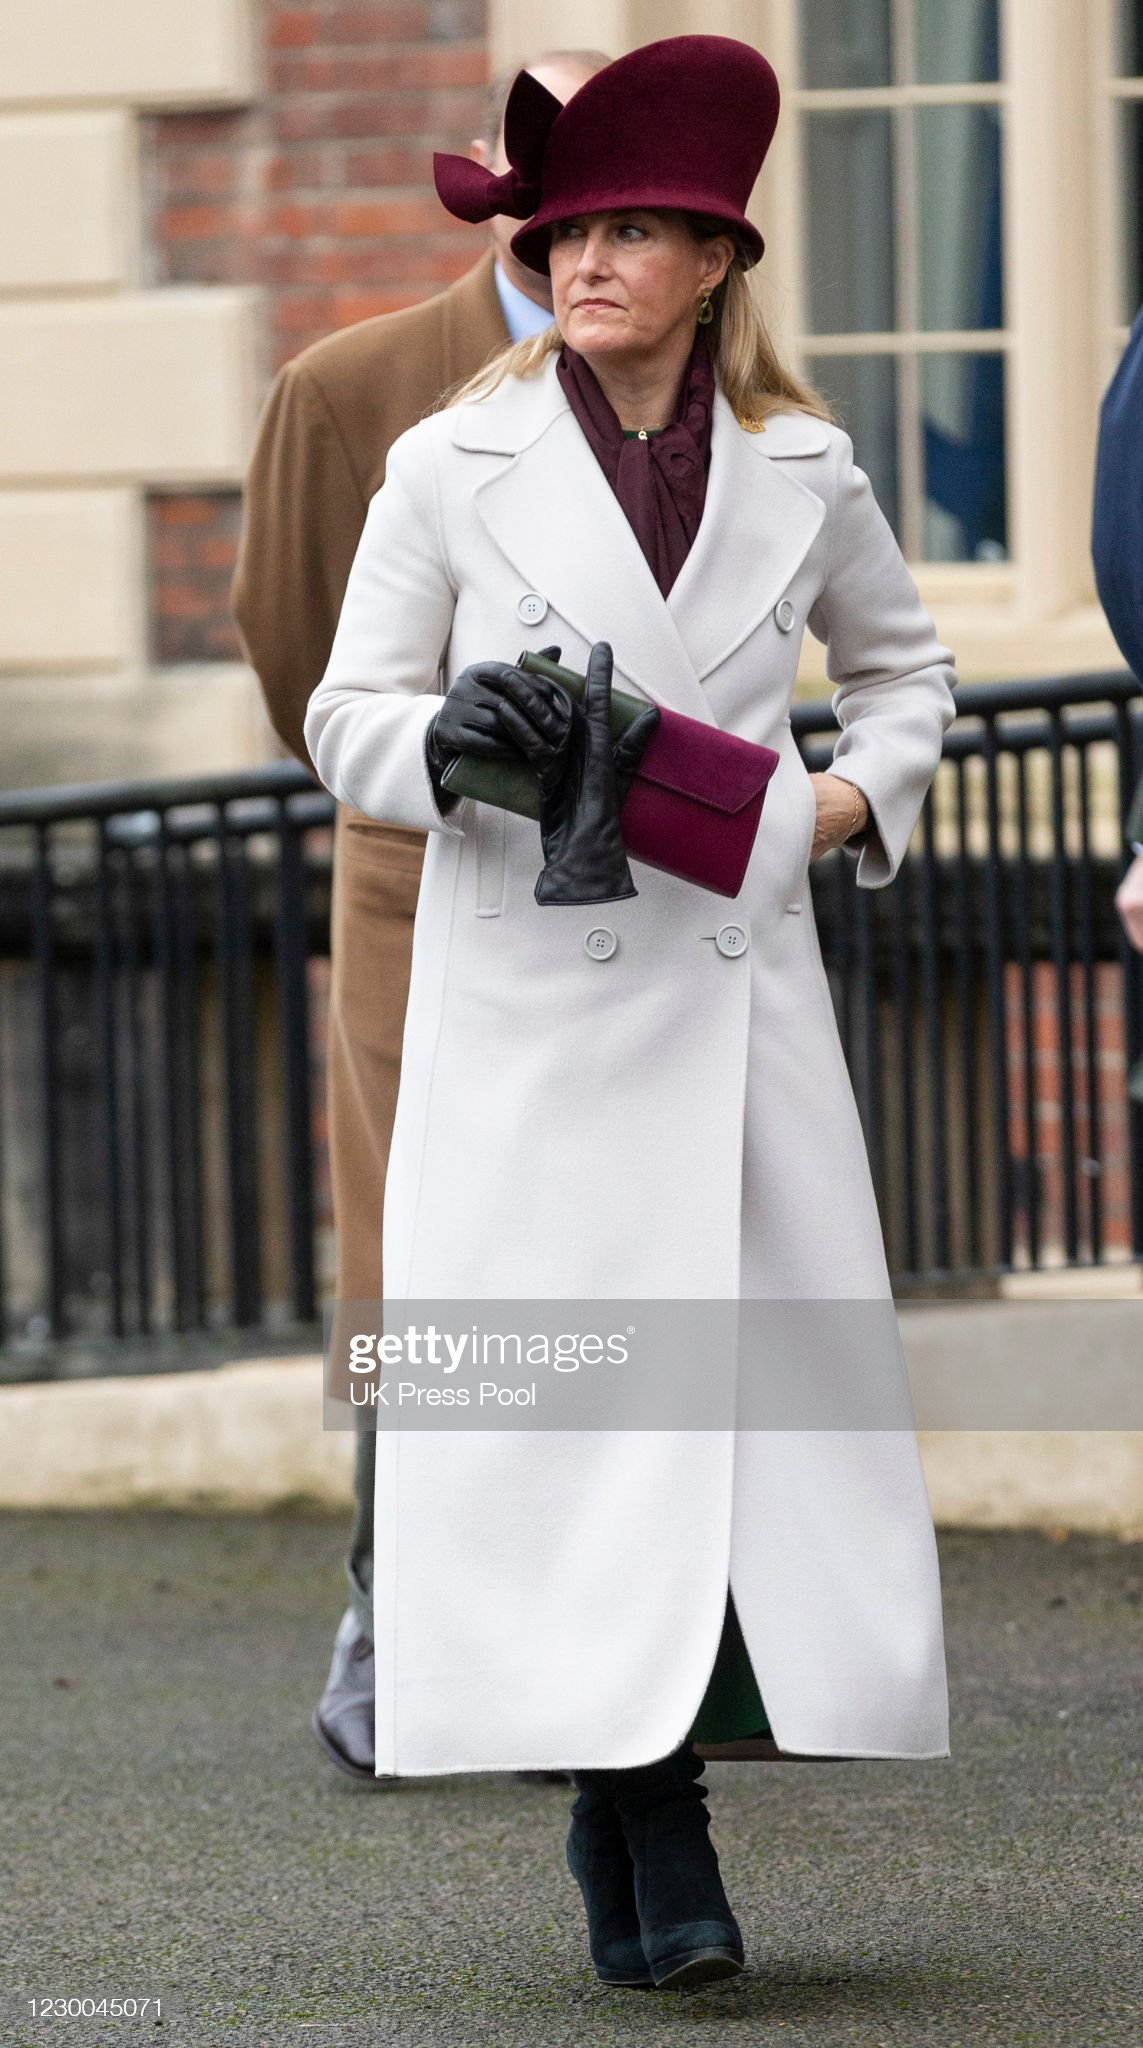 https://media.gettyimages.com/photos/sophie-countess-of-wessex-visits-the-corps-of-army-music-for-a-and-picture-id1230045071?s=2048x2048